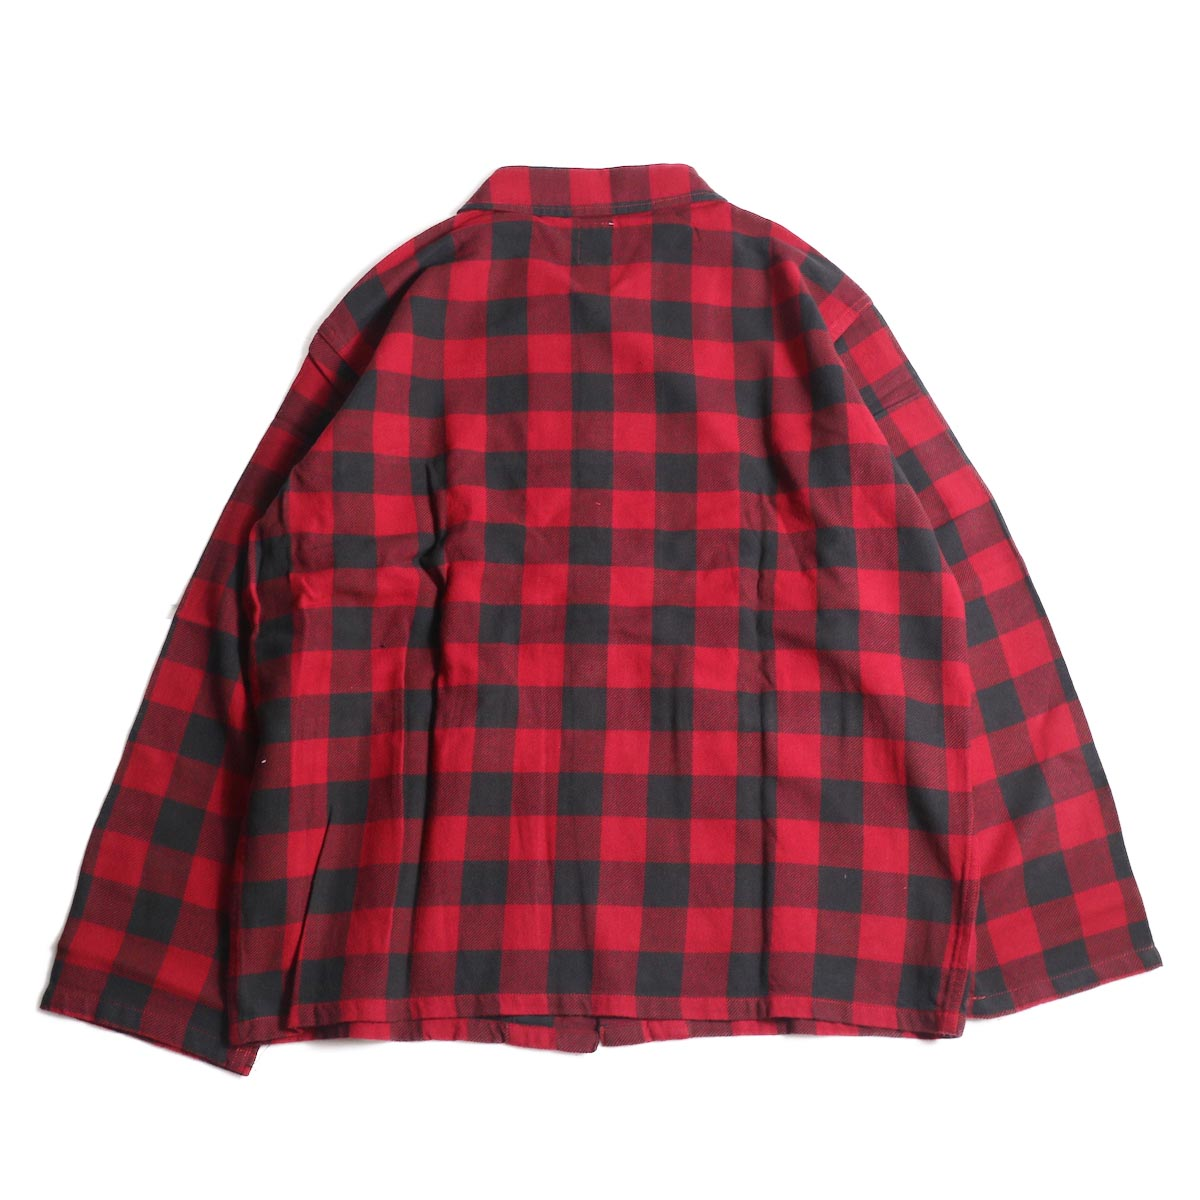 South2 West8 / Hunting Shirt -Plaid Twill (Red/Black)背面